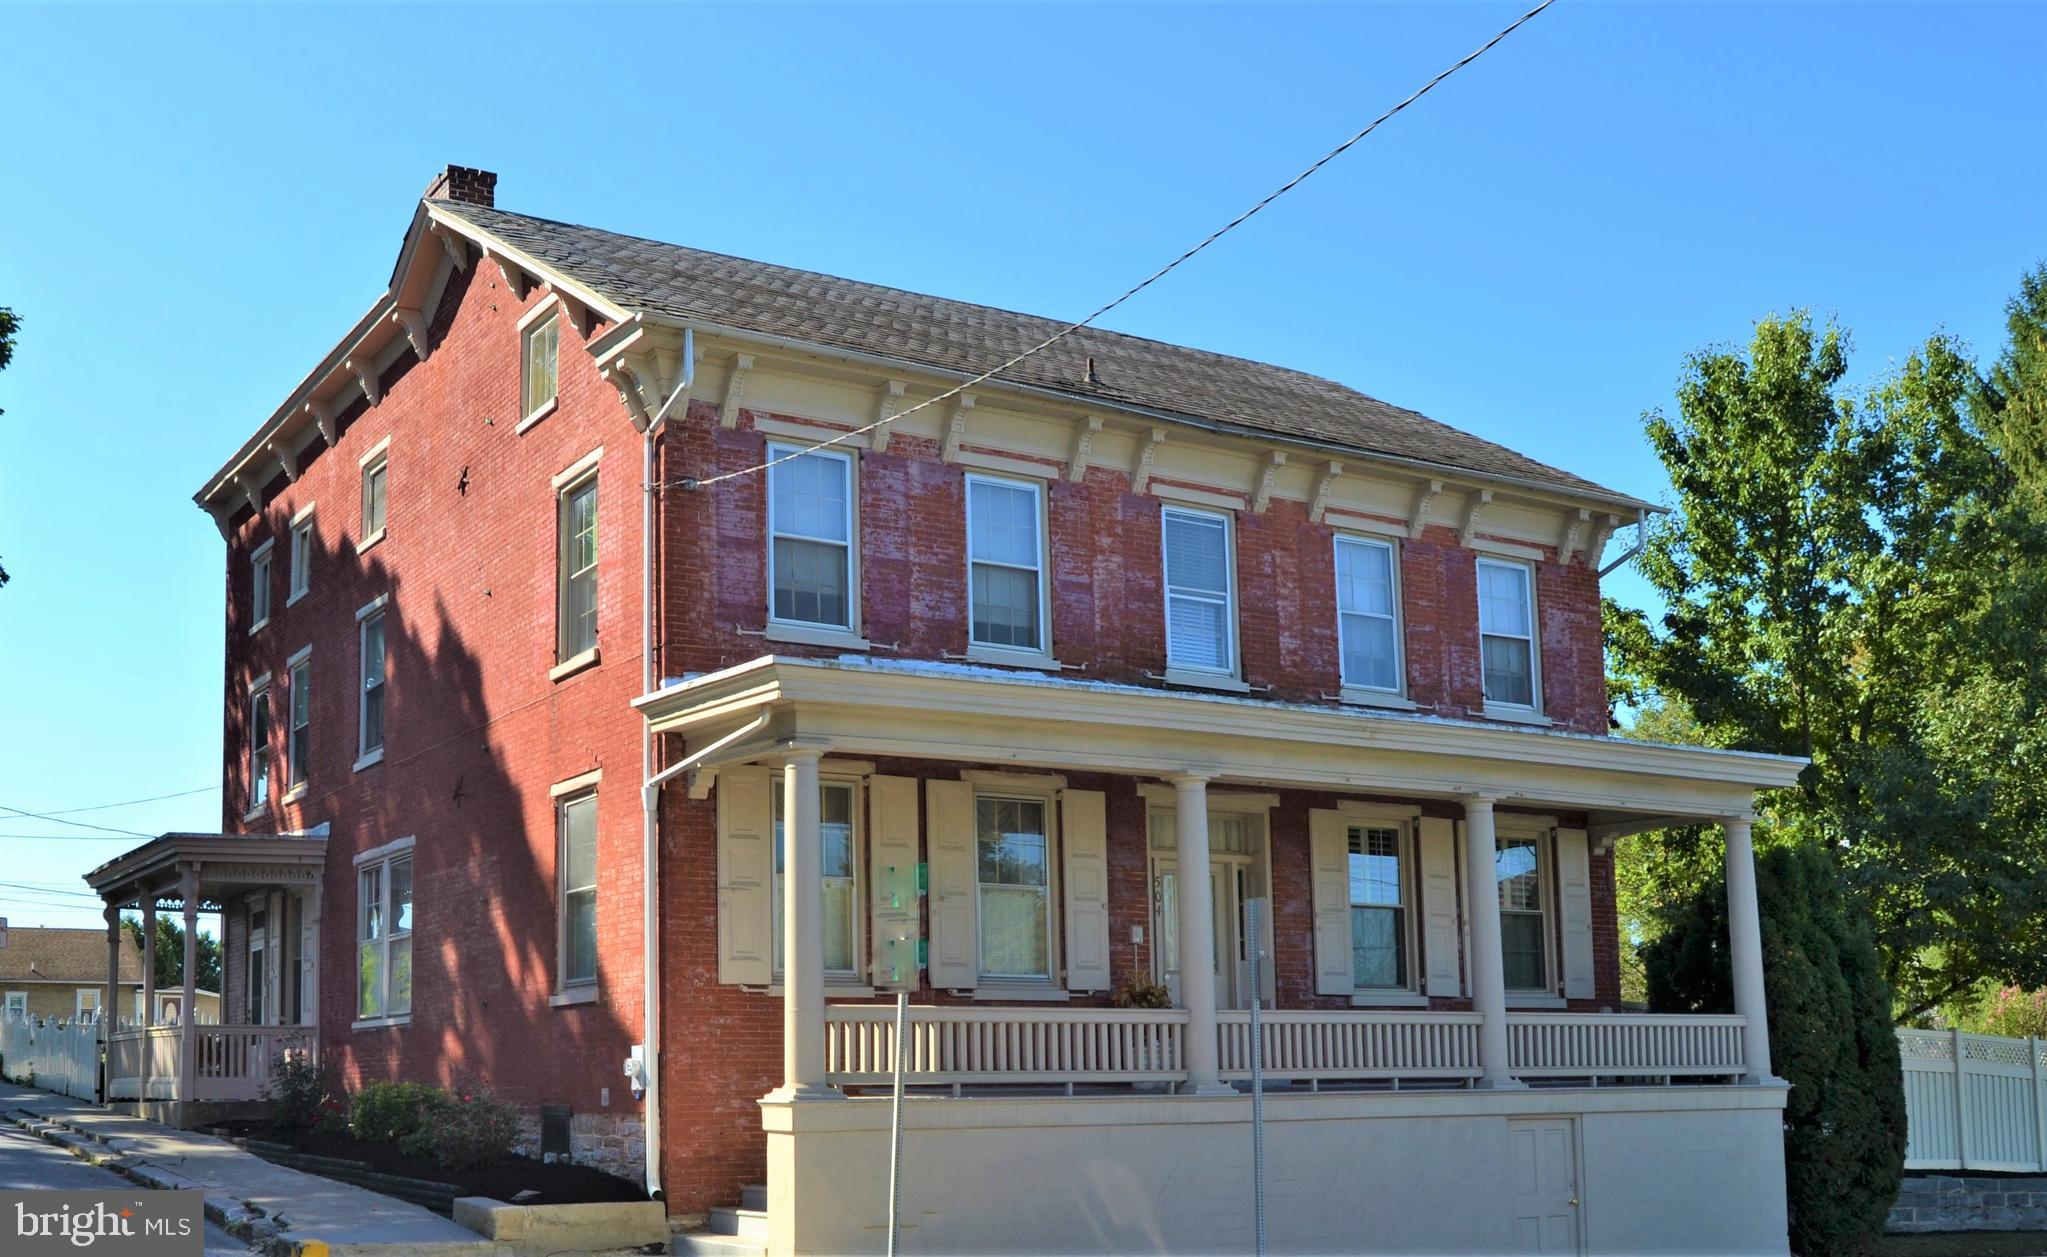 A rare find! All brick home built in the 1800s.